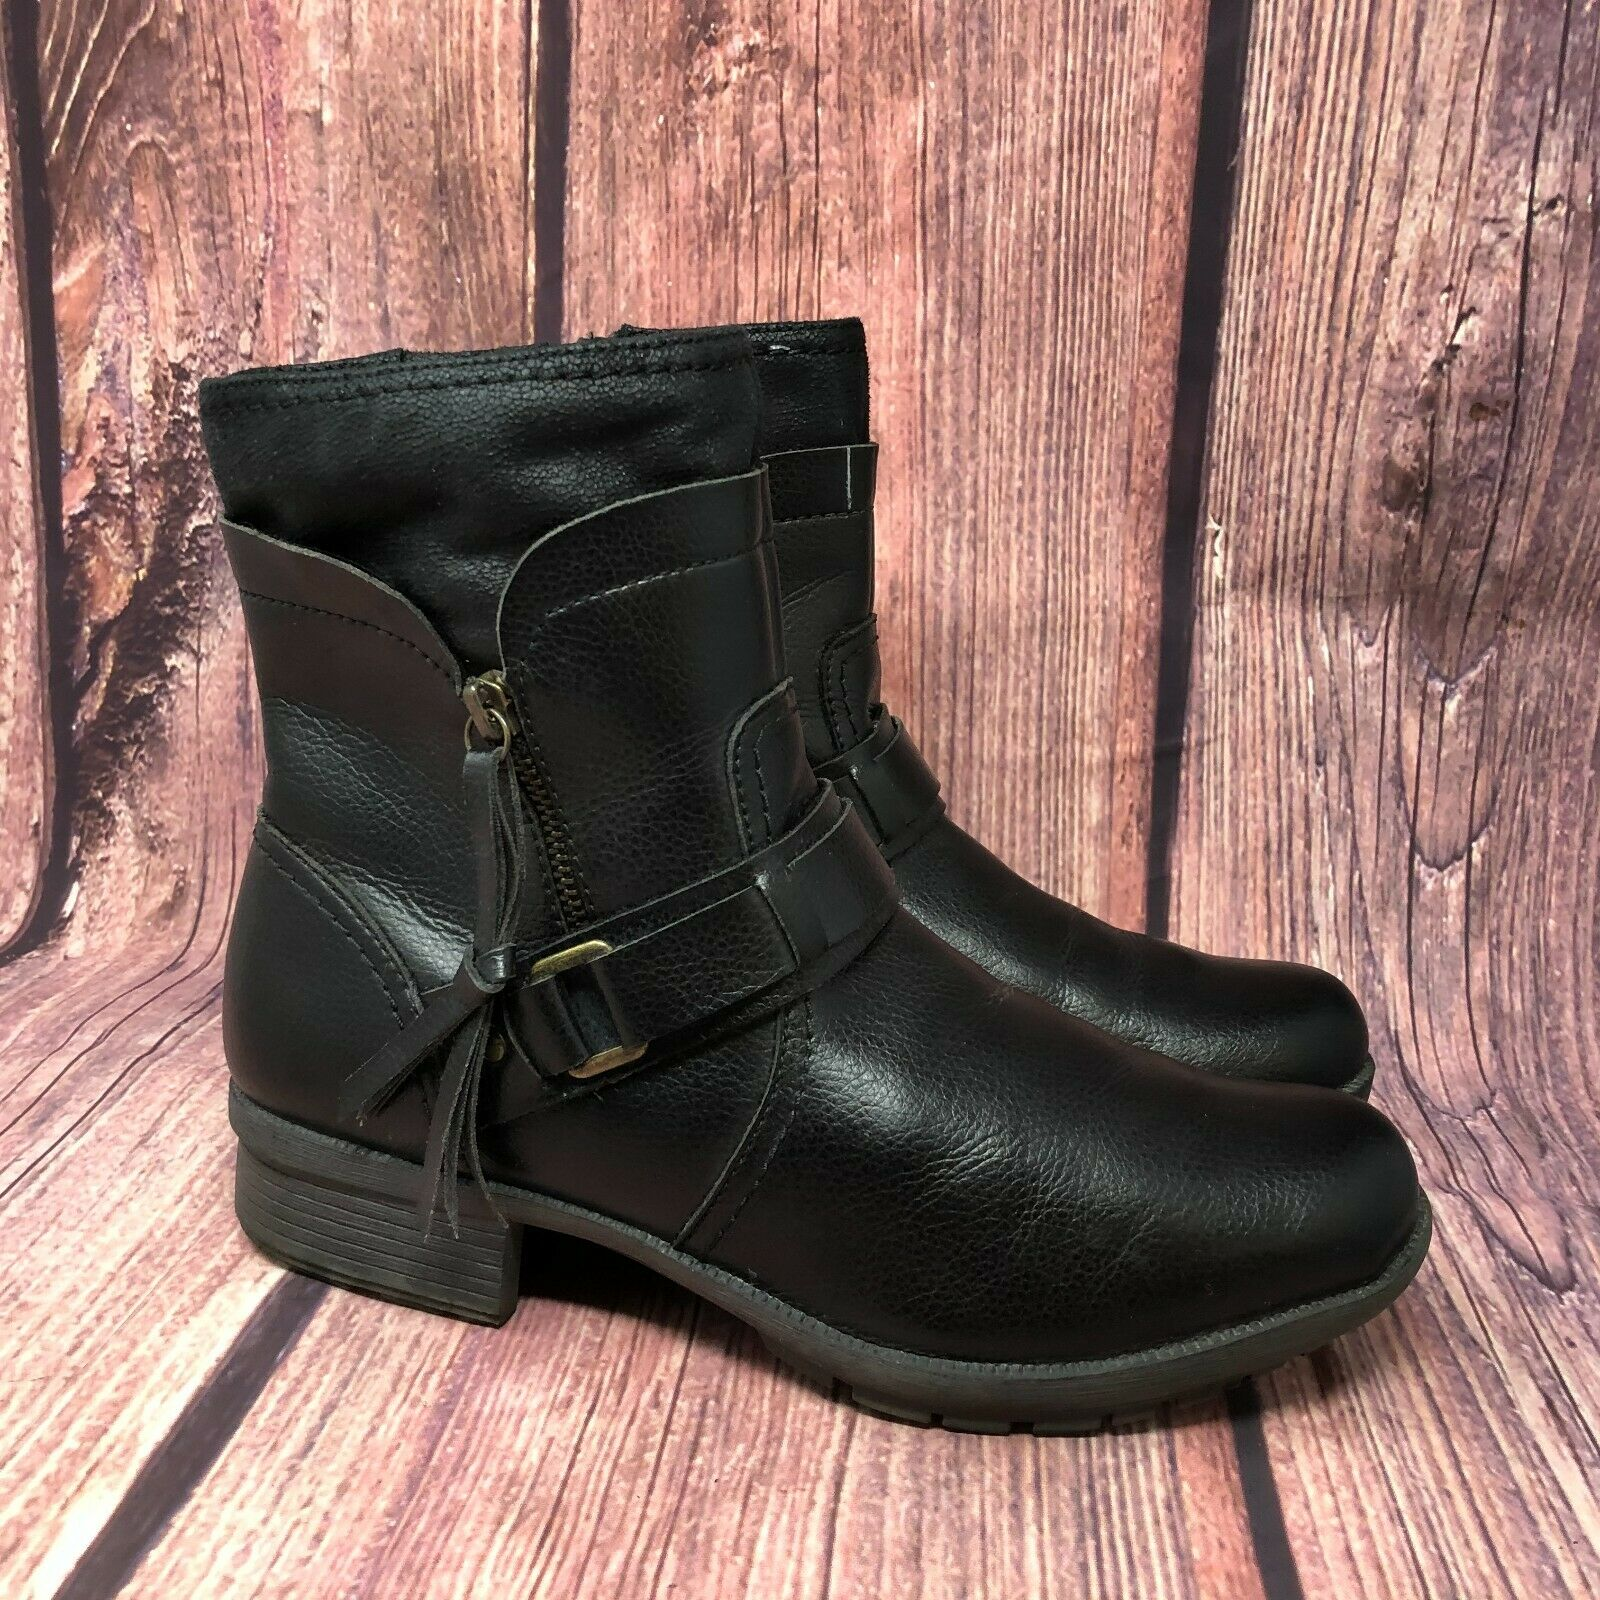 NEW WOMEN CLARKS ORTHOLITE HOPE TWIRL BLACK LEATHER COMFORT MEDIUM OR WIDE BOOTS